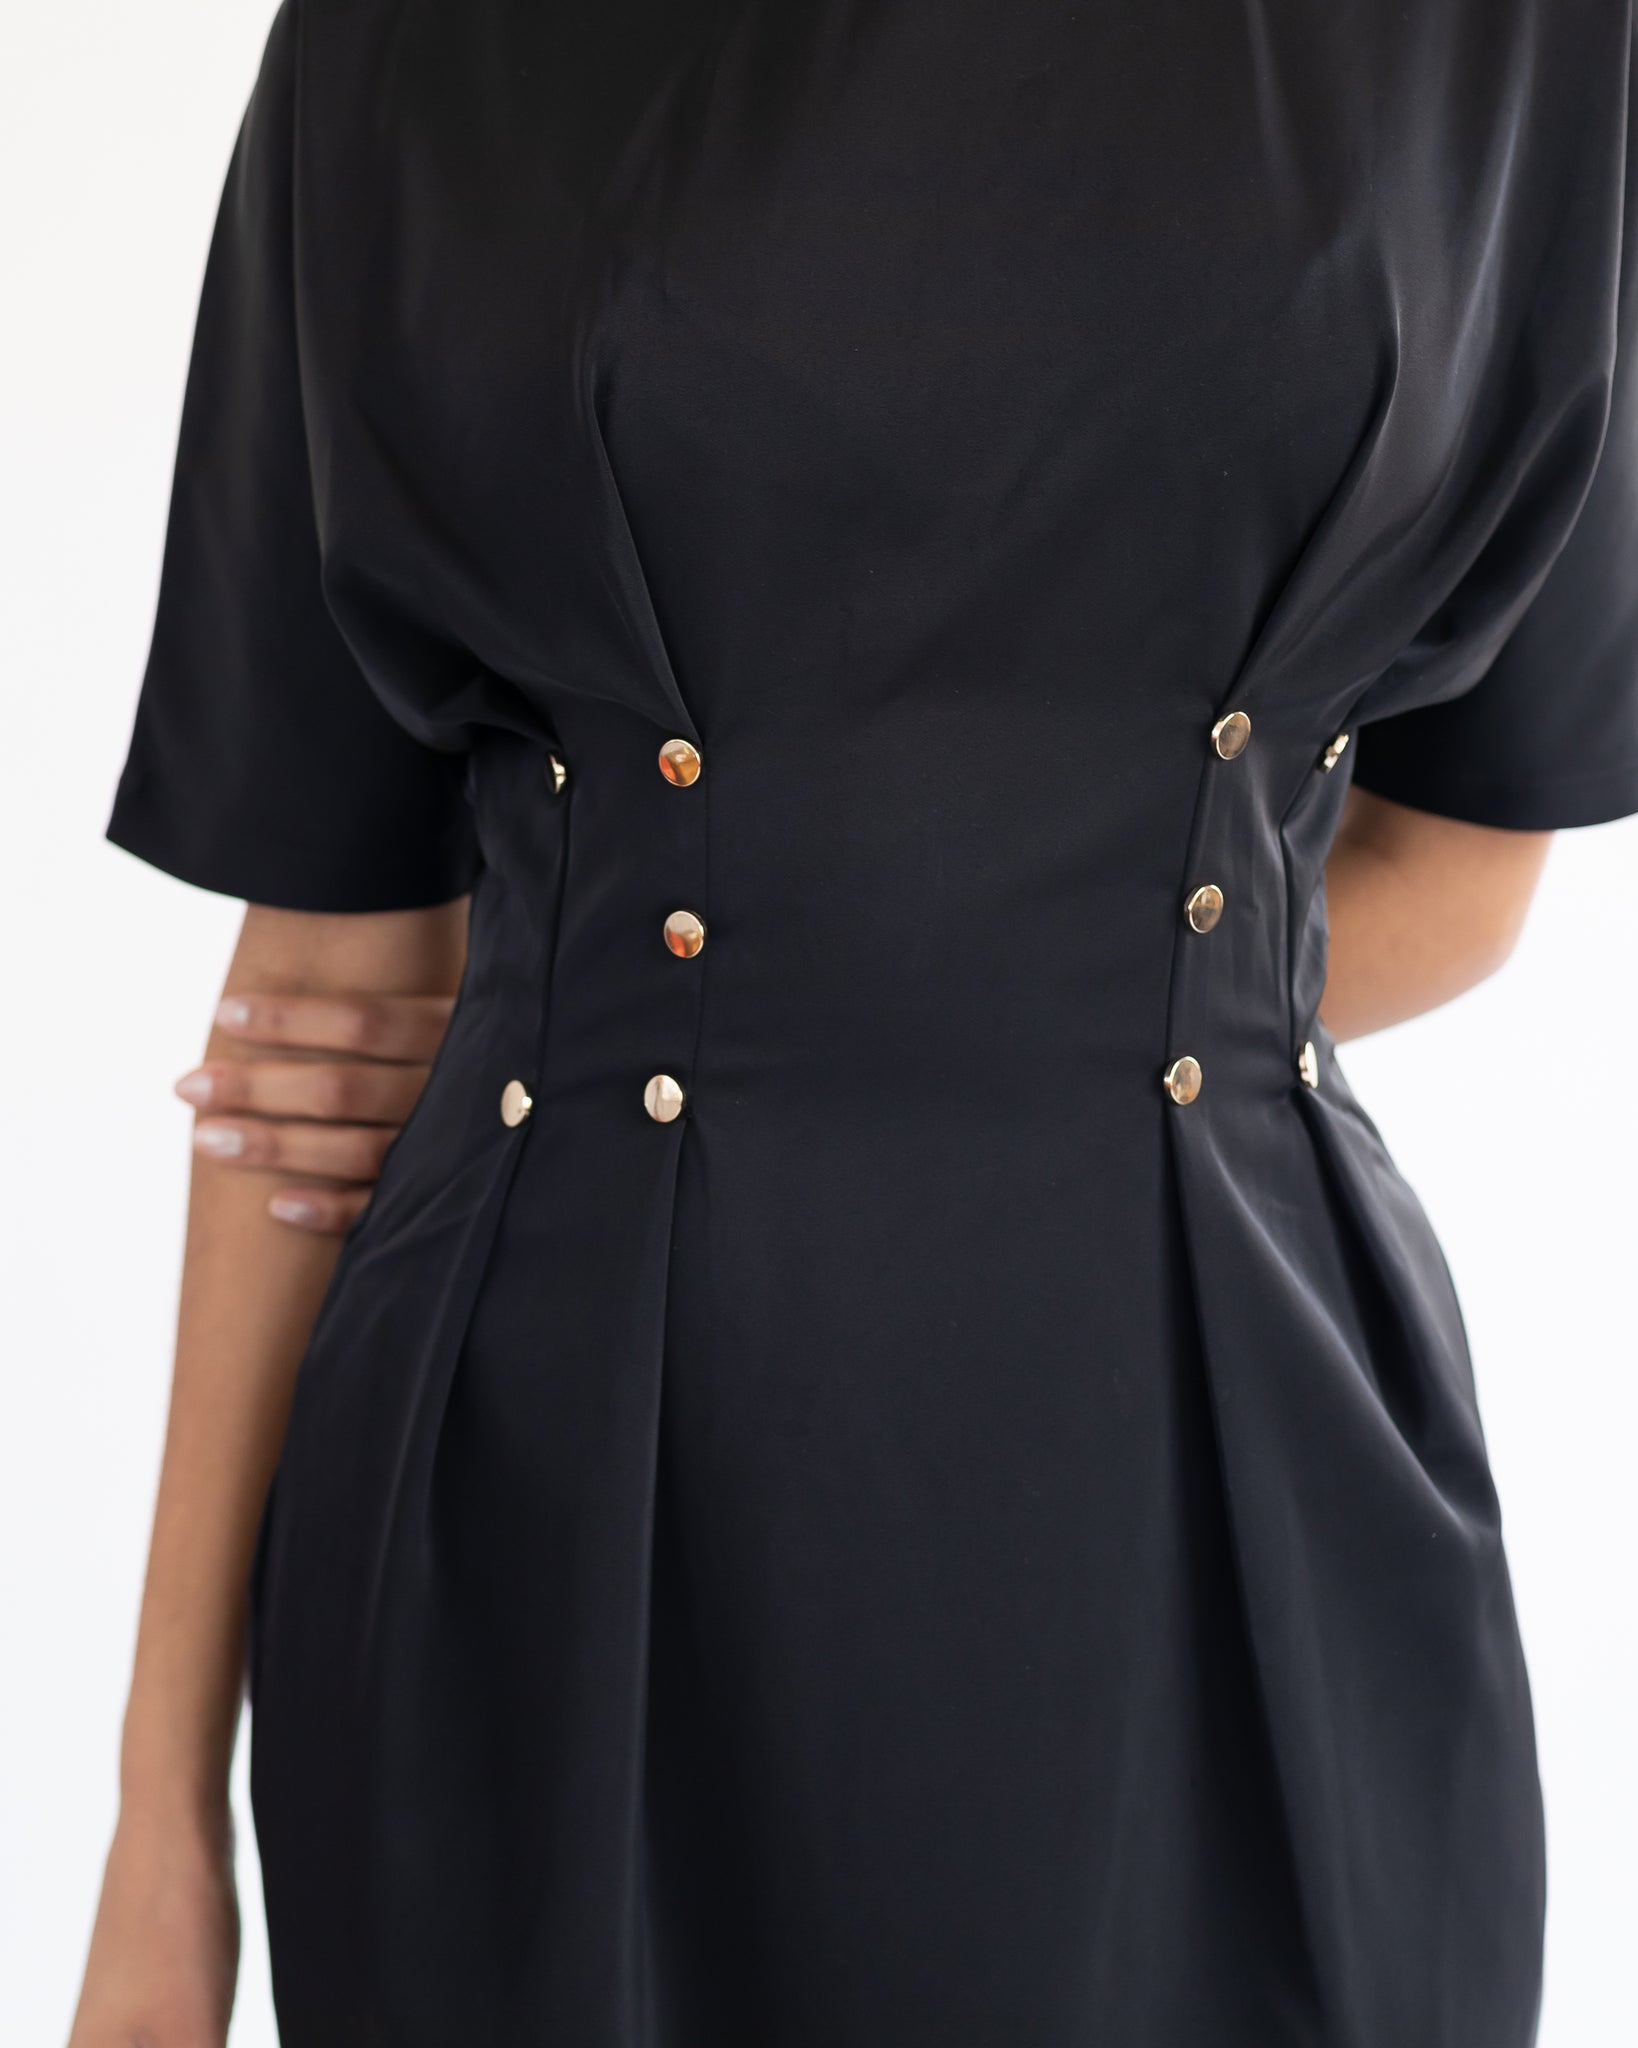 Black Dress with Gold Buttons